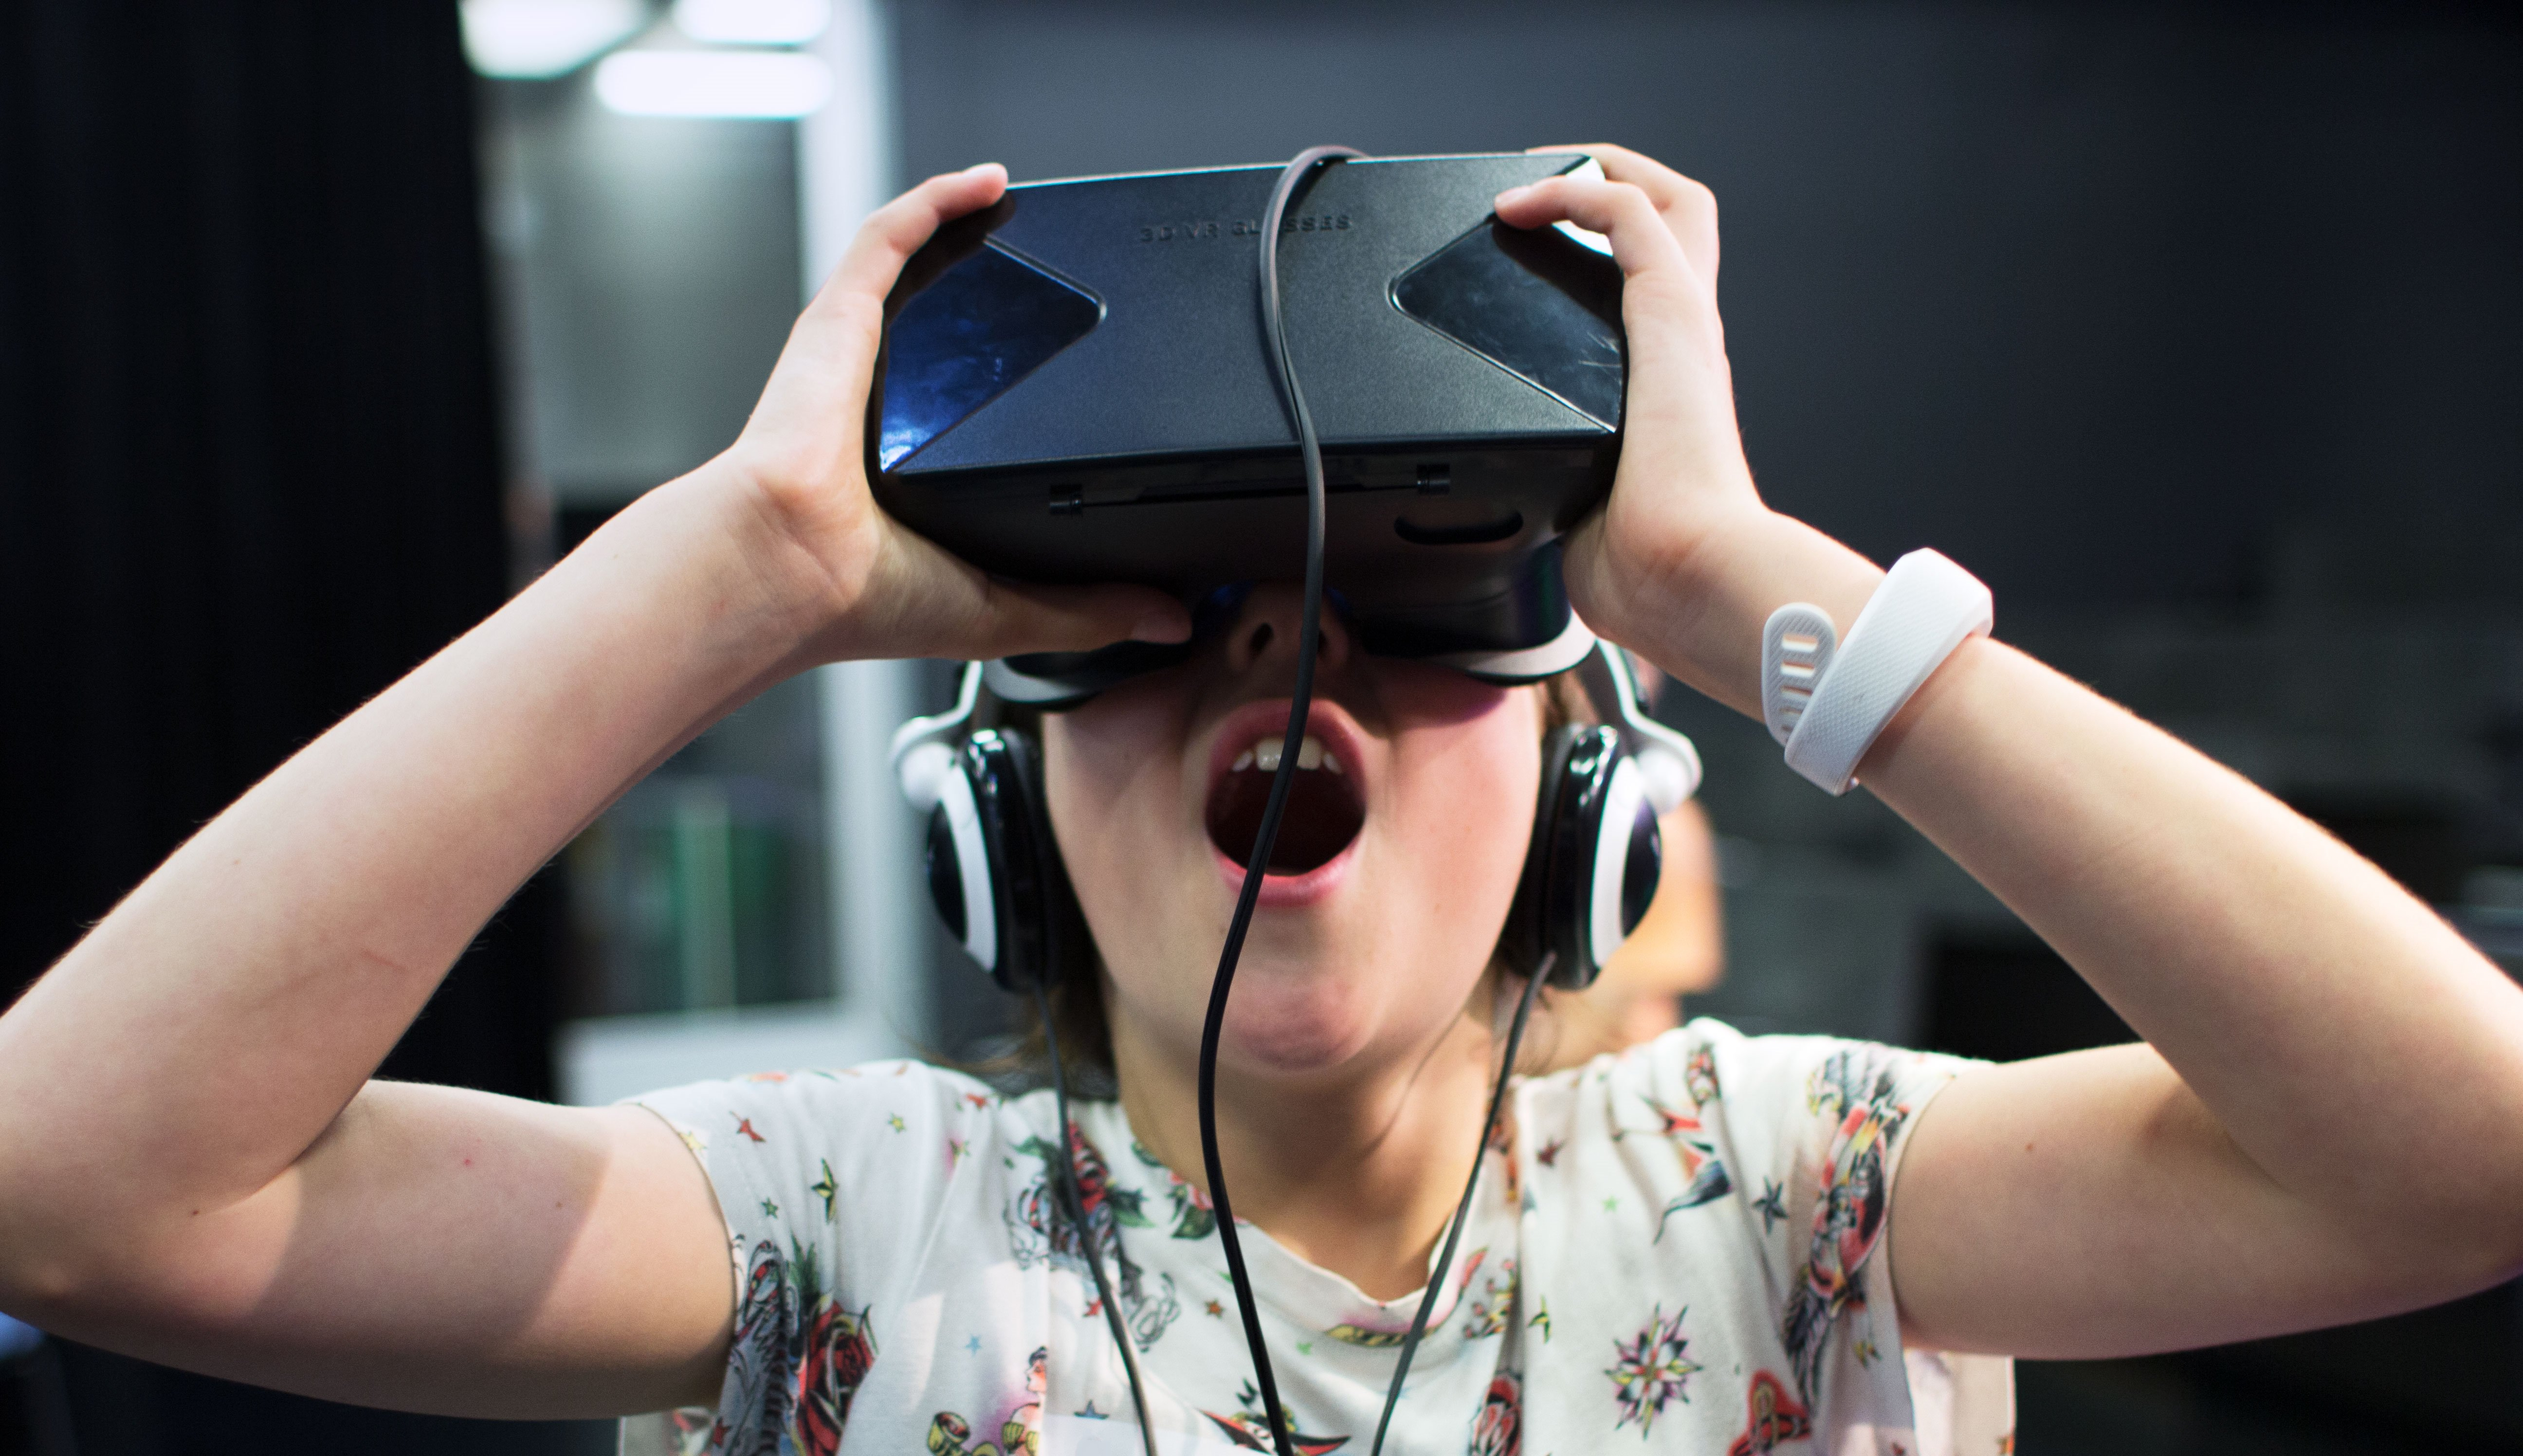 Student at ACMI using a VR headset